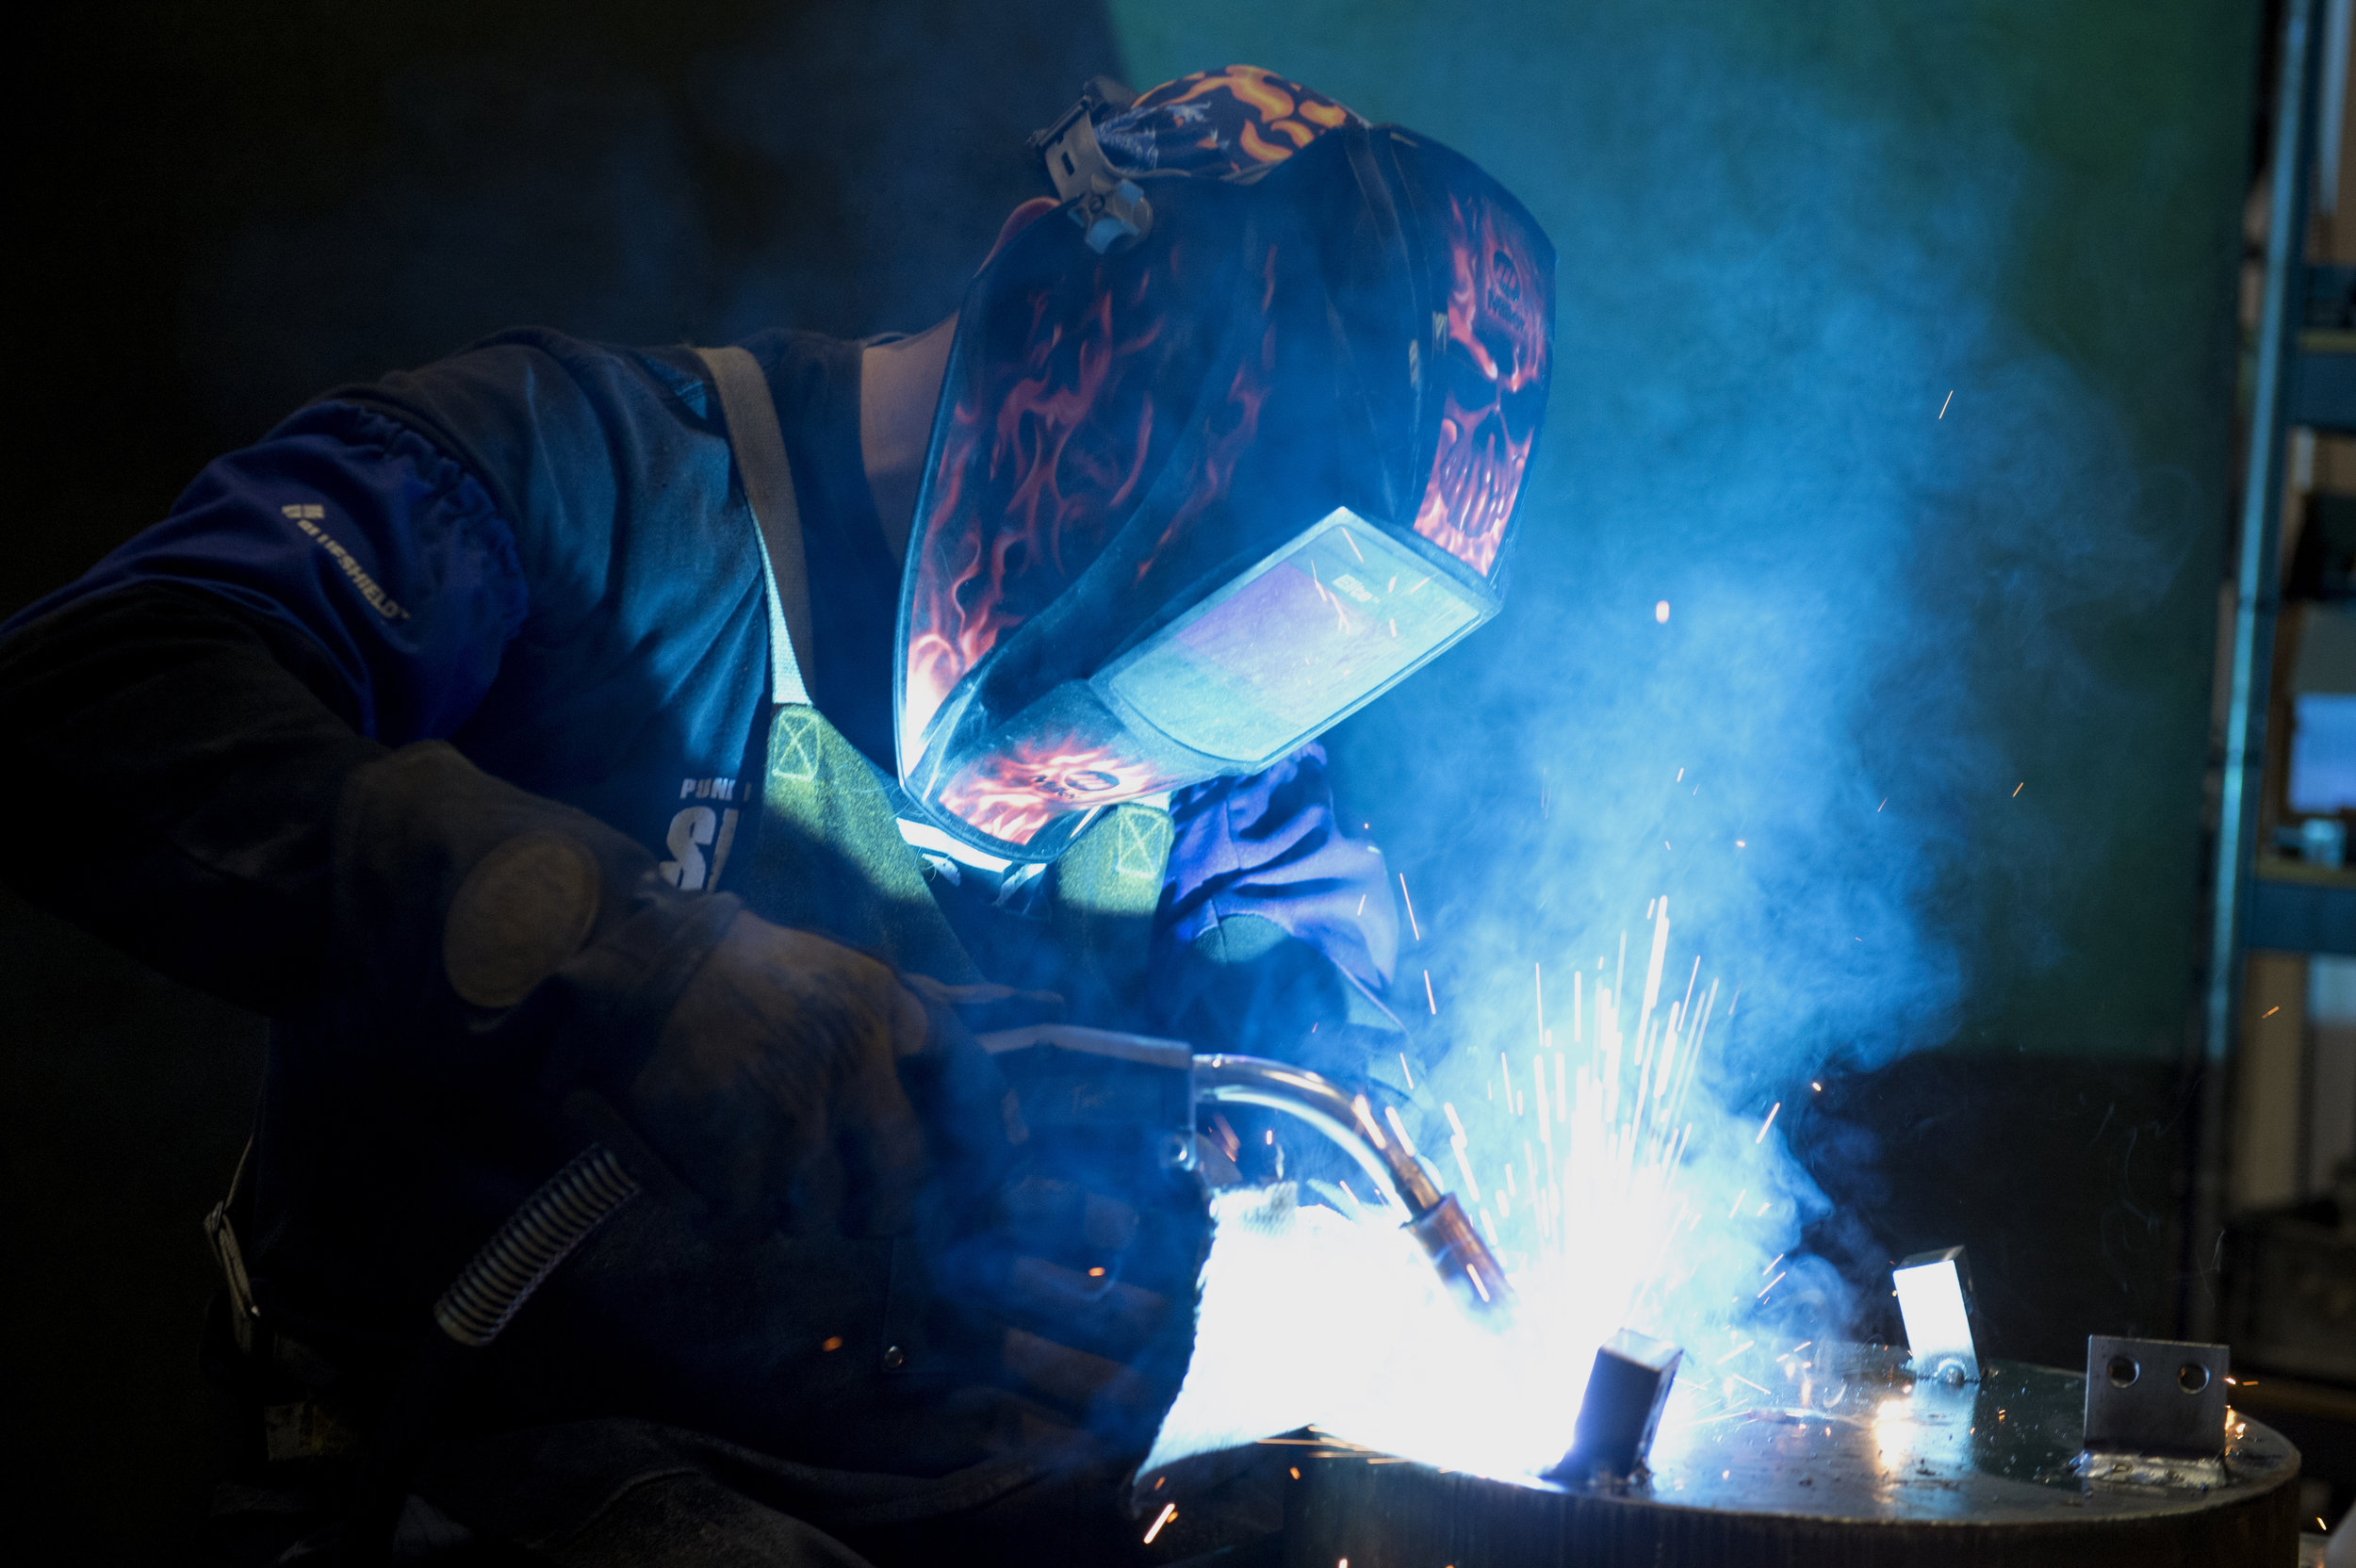 Marta-Hewson-industrial-photography-welders-flash-Kitestring-VTR-Bowlfeeders.jpg